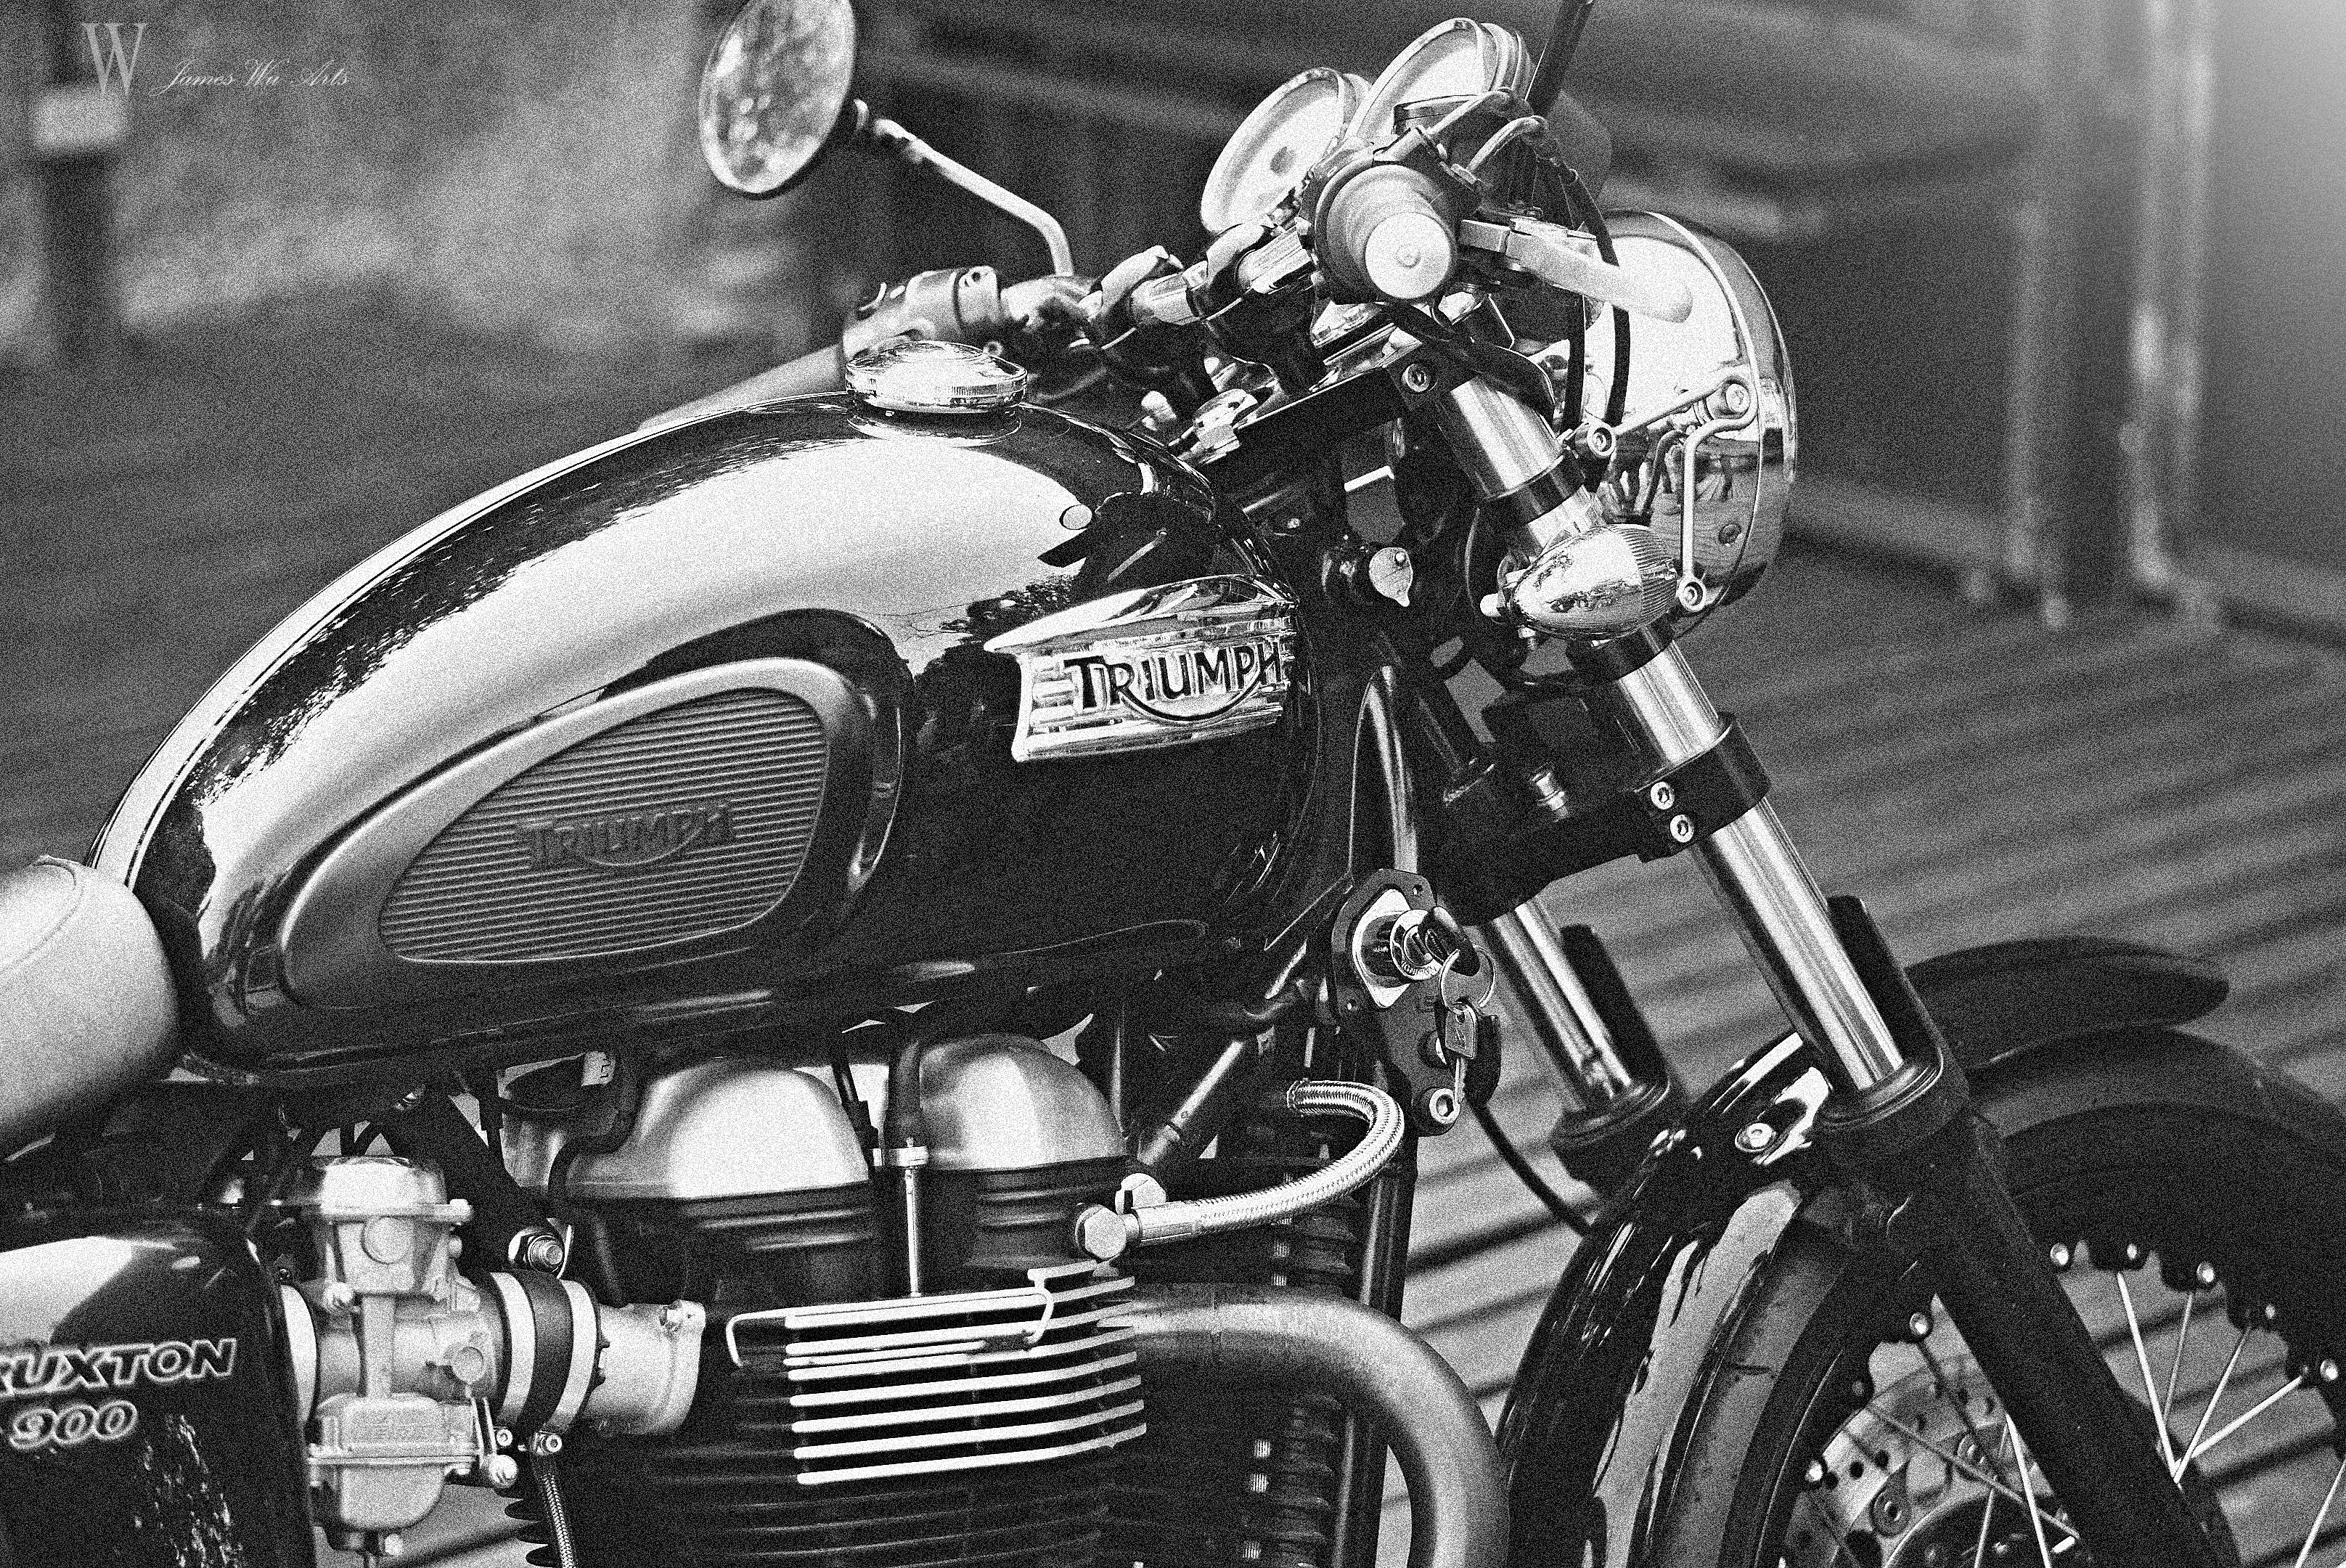 TONUP ROCKERS CAFE RACER (35)